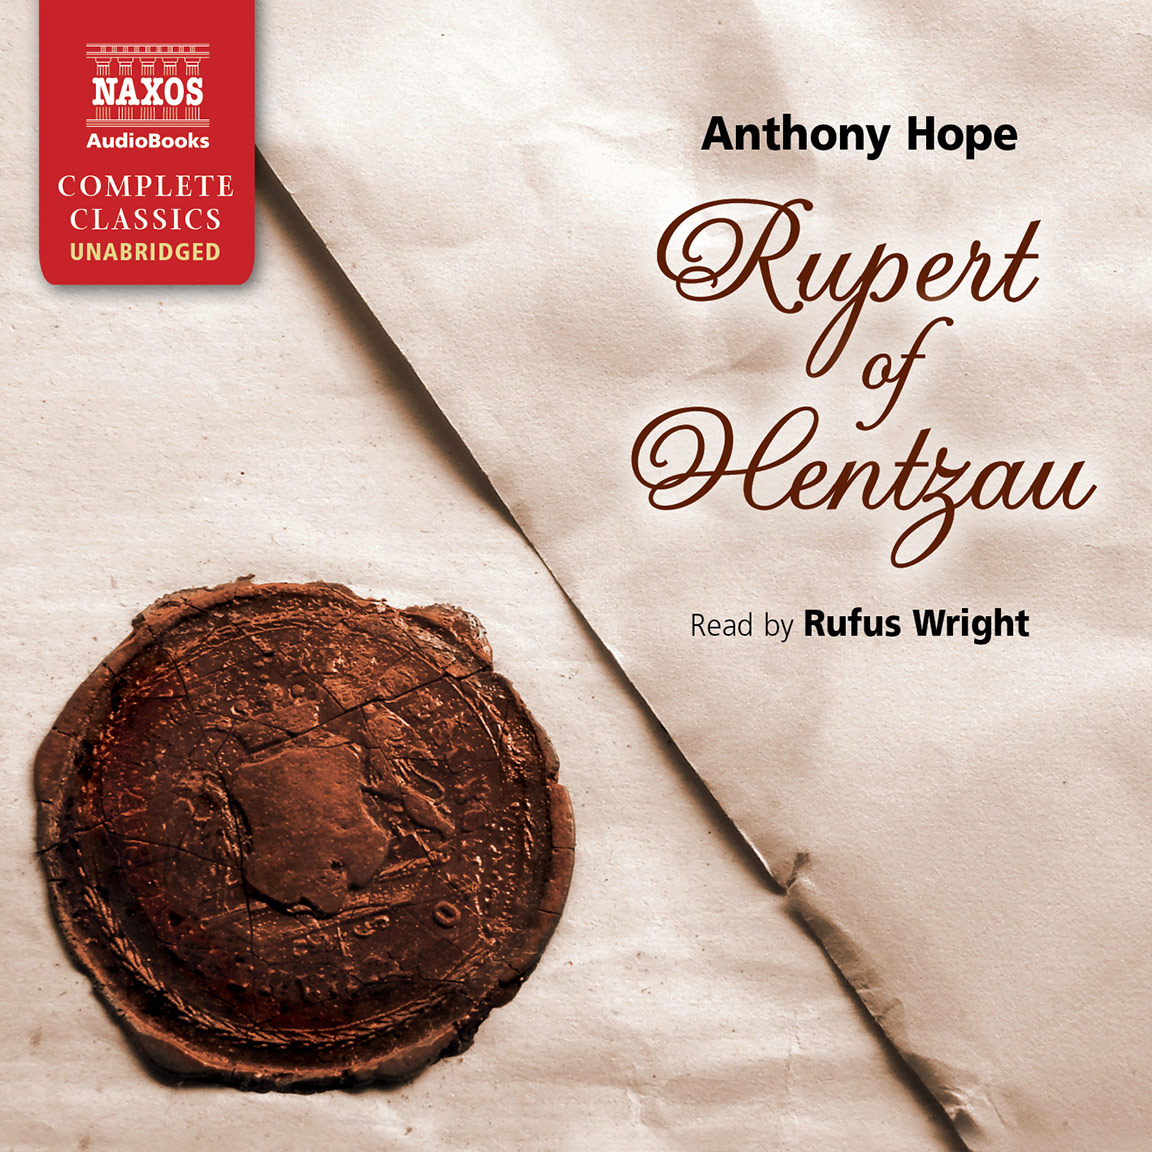 Rupert of Hentzau (unabridged)